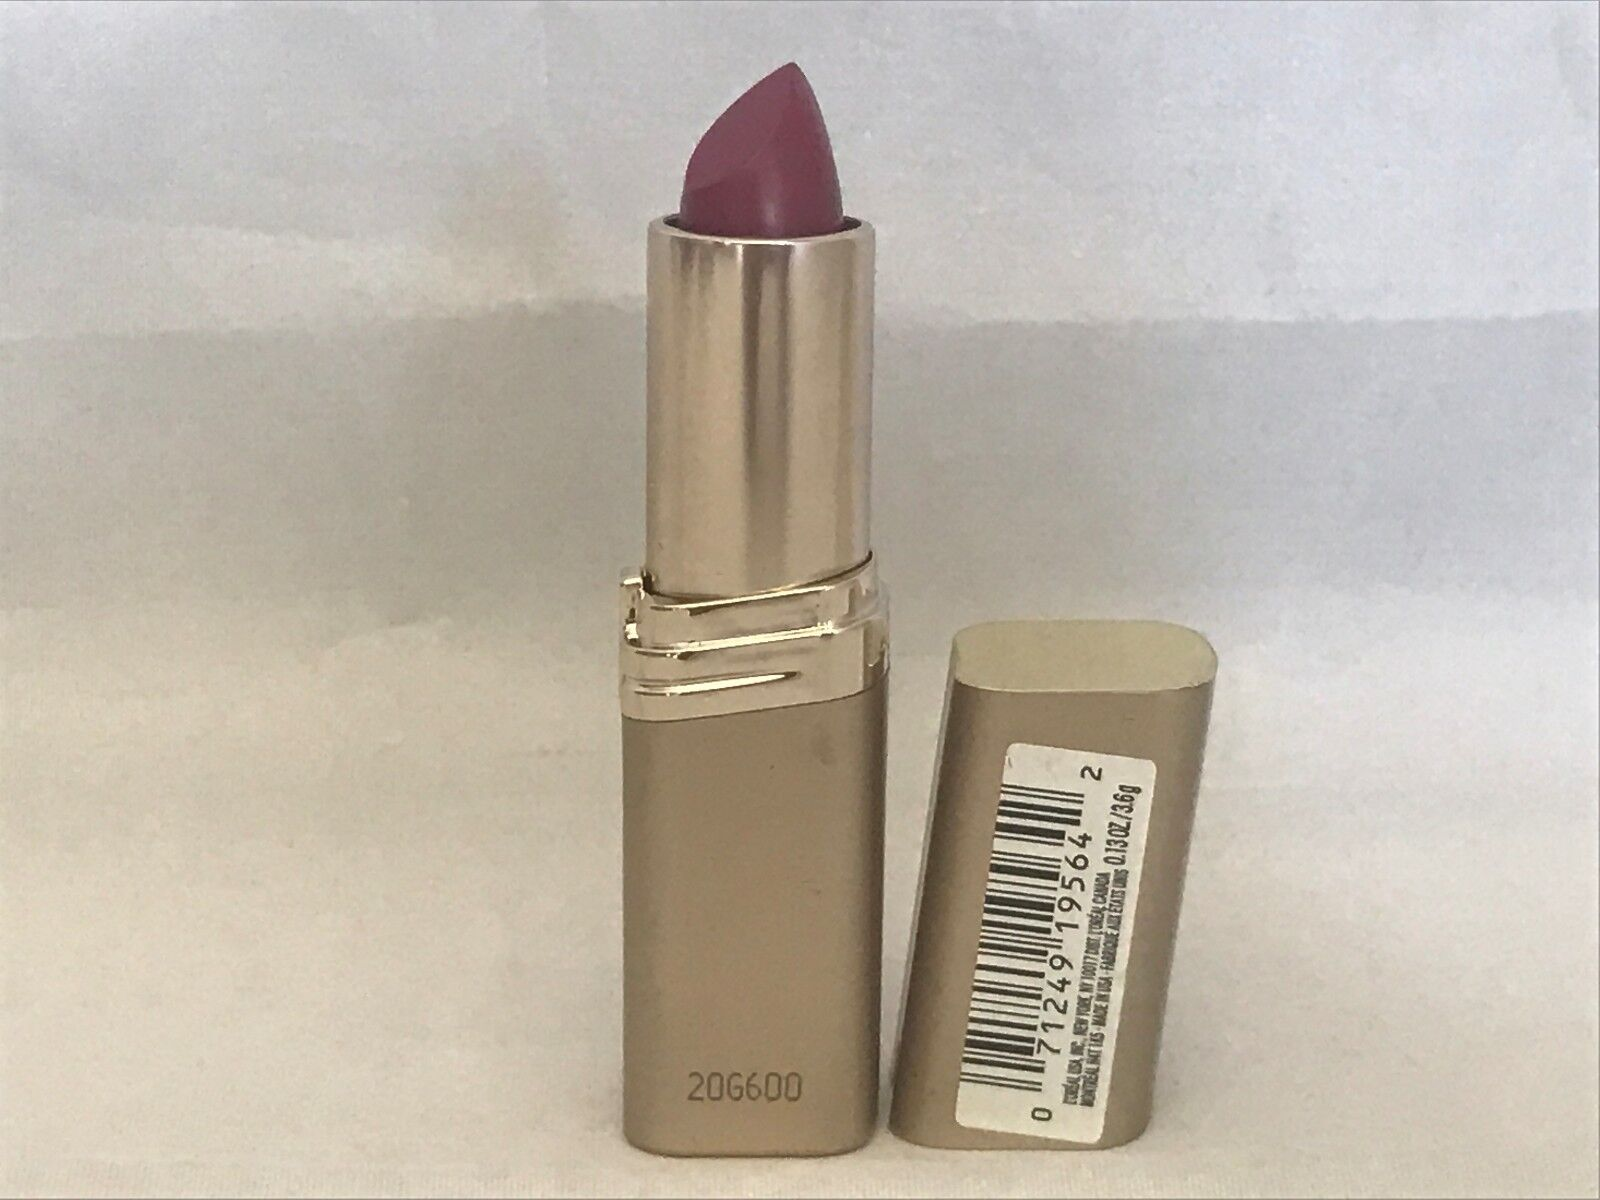 L'oreal Colour Riche Lipstick ~ 116 Bewitching Berry - New